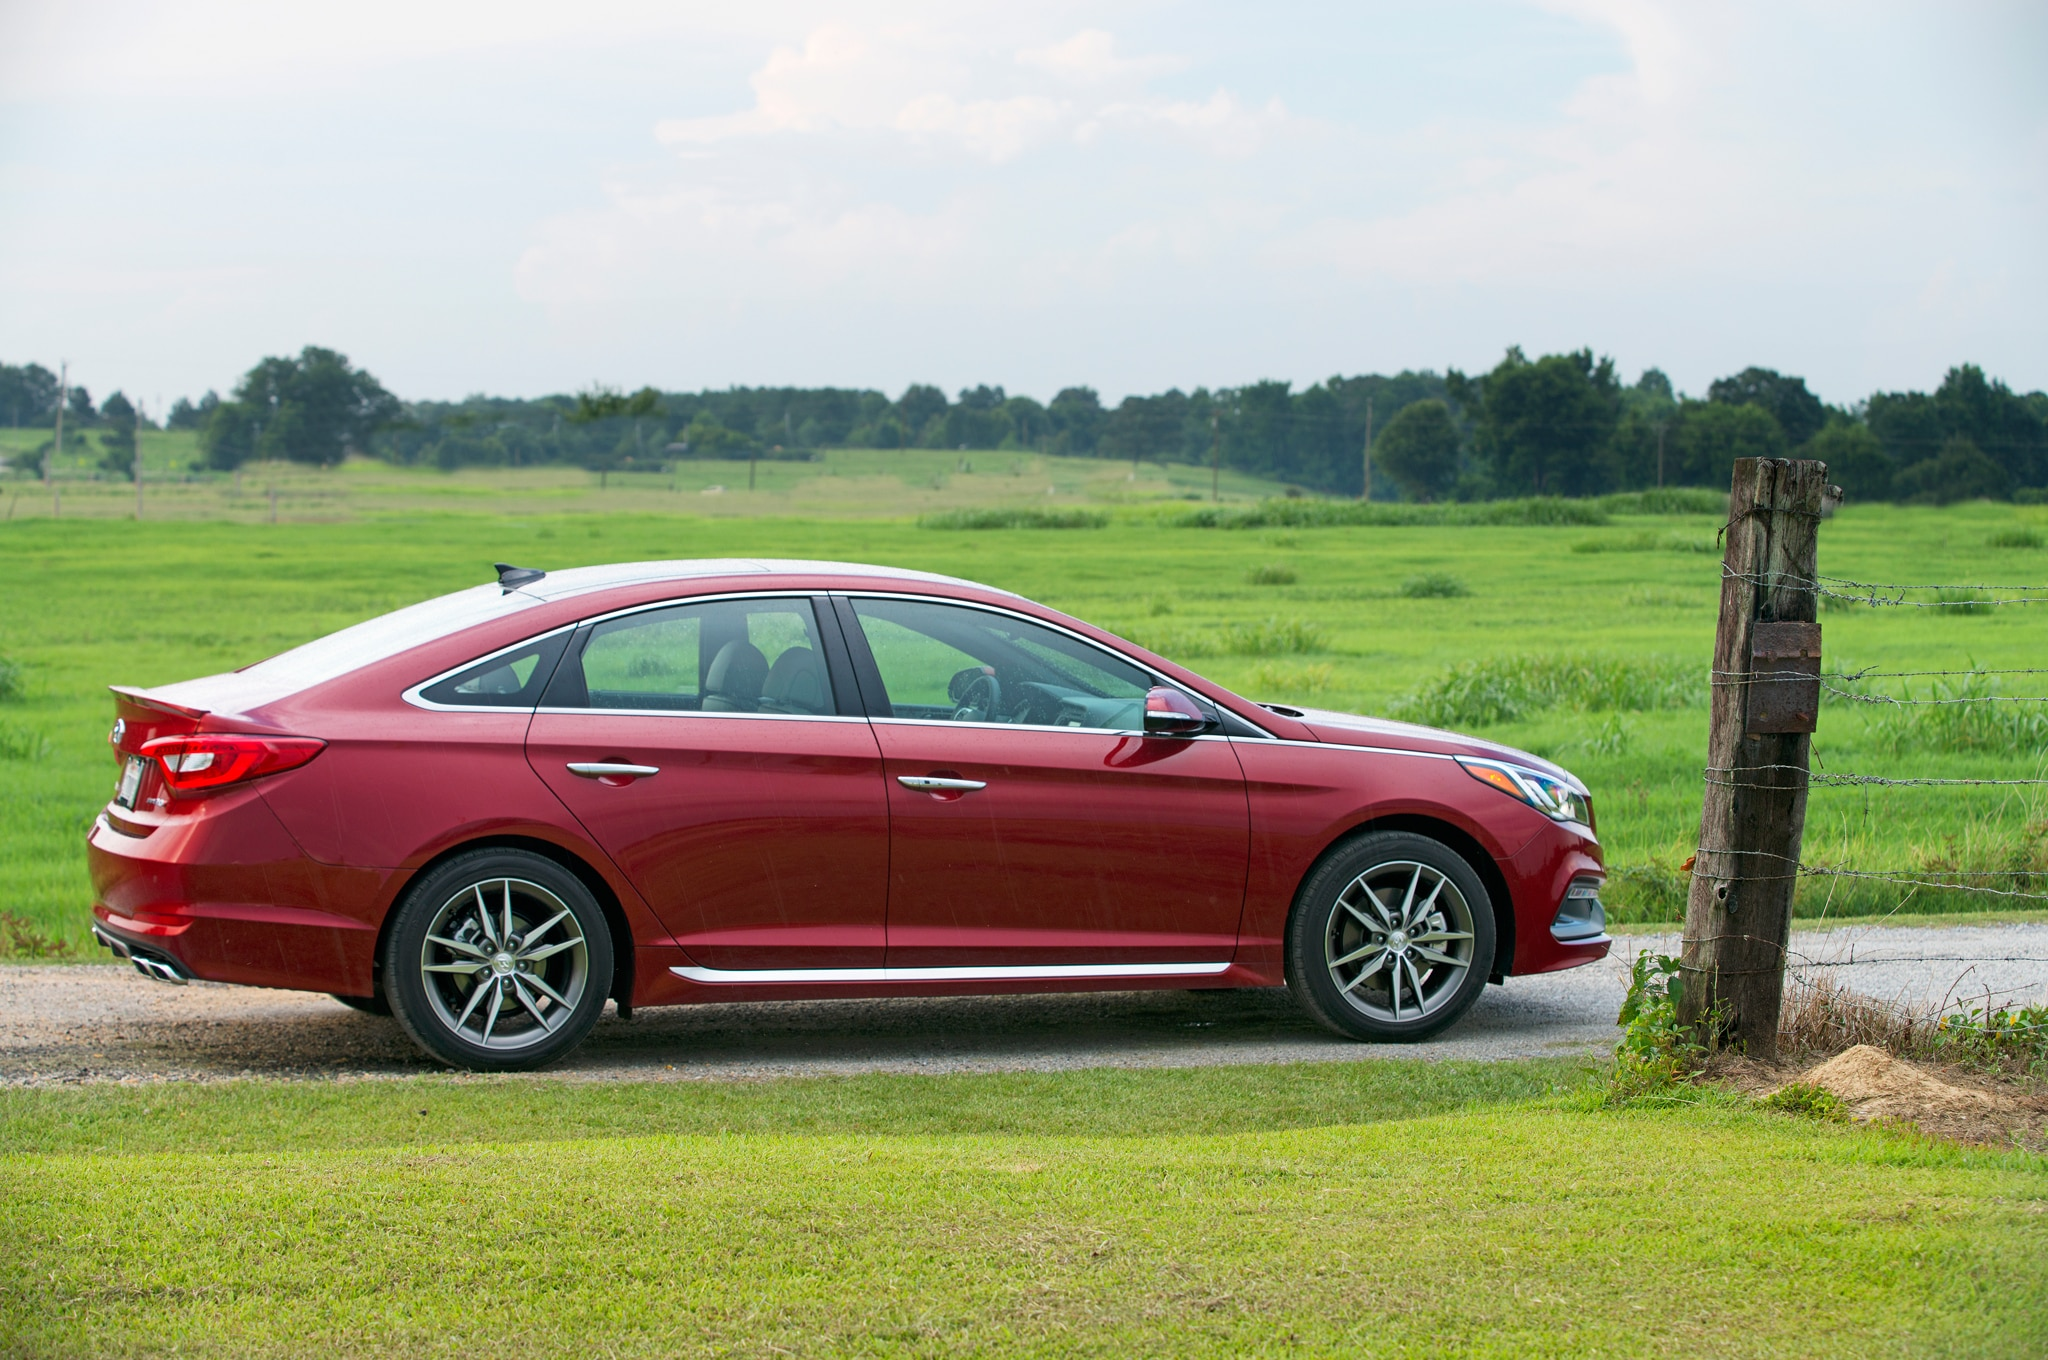 2015 Hyundai Sonata Review